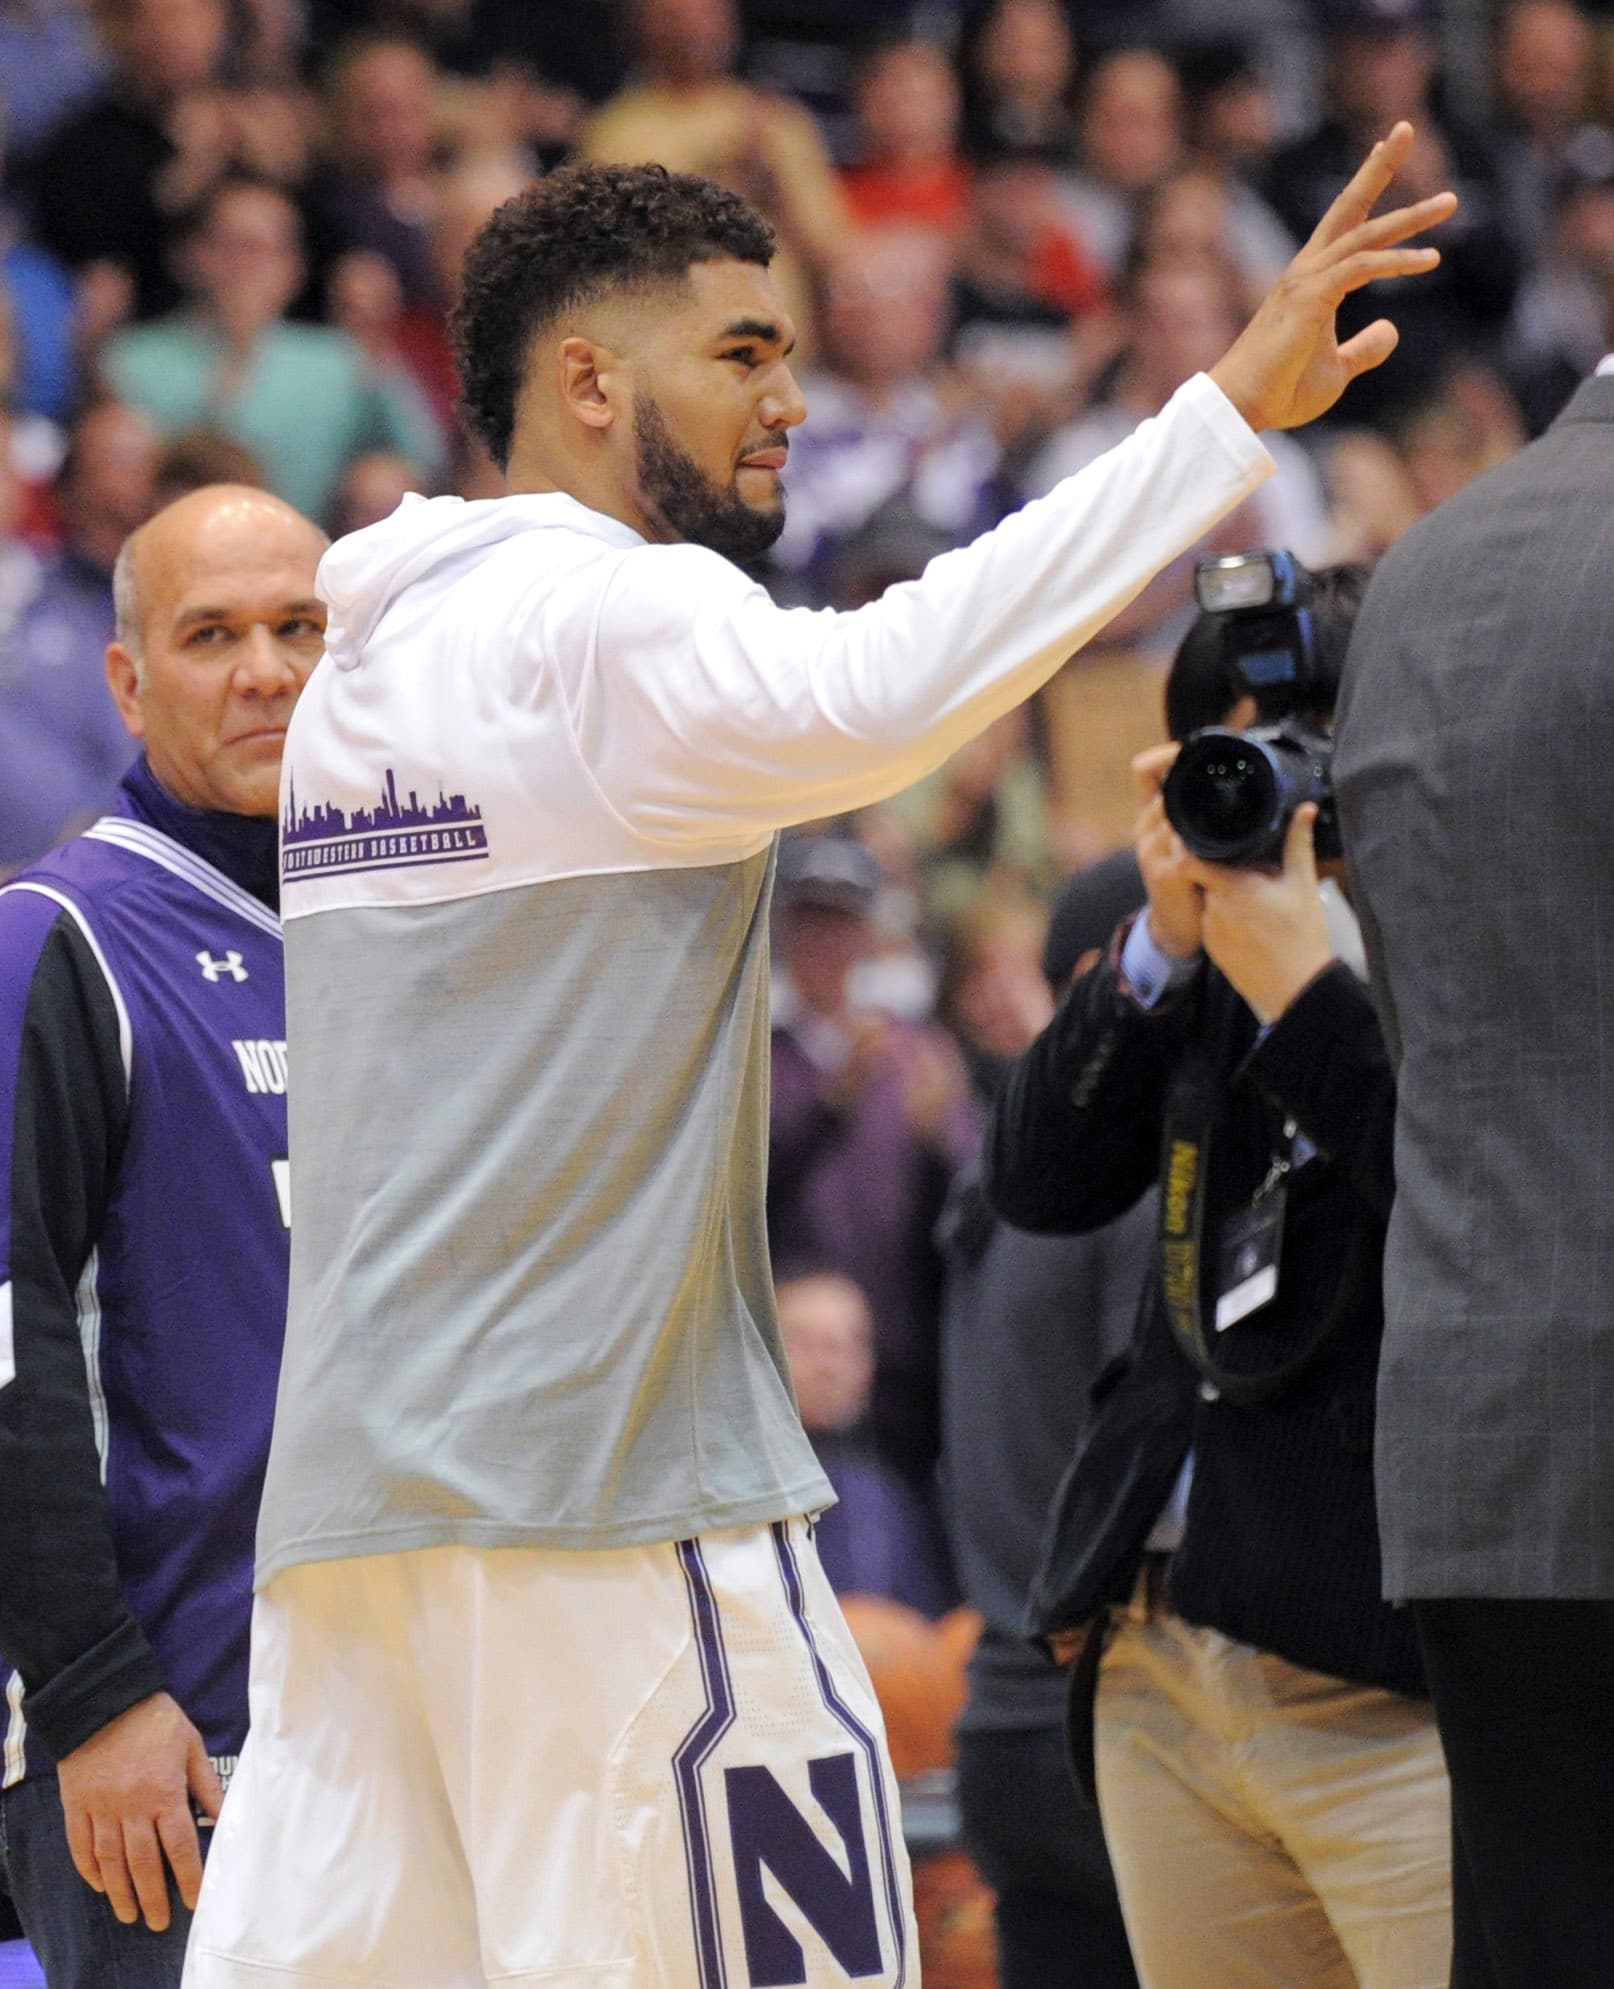 Northwestern senior Sanjay Lumpkin gets emotional during the senior day presentation prior to Sunday's loss. (Patrick Gorski/USA TODAY Sports)